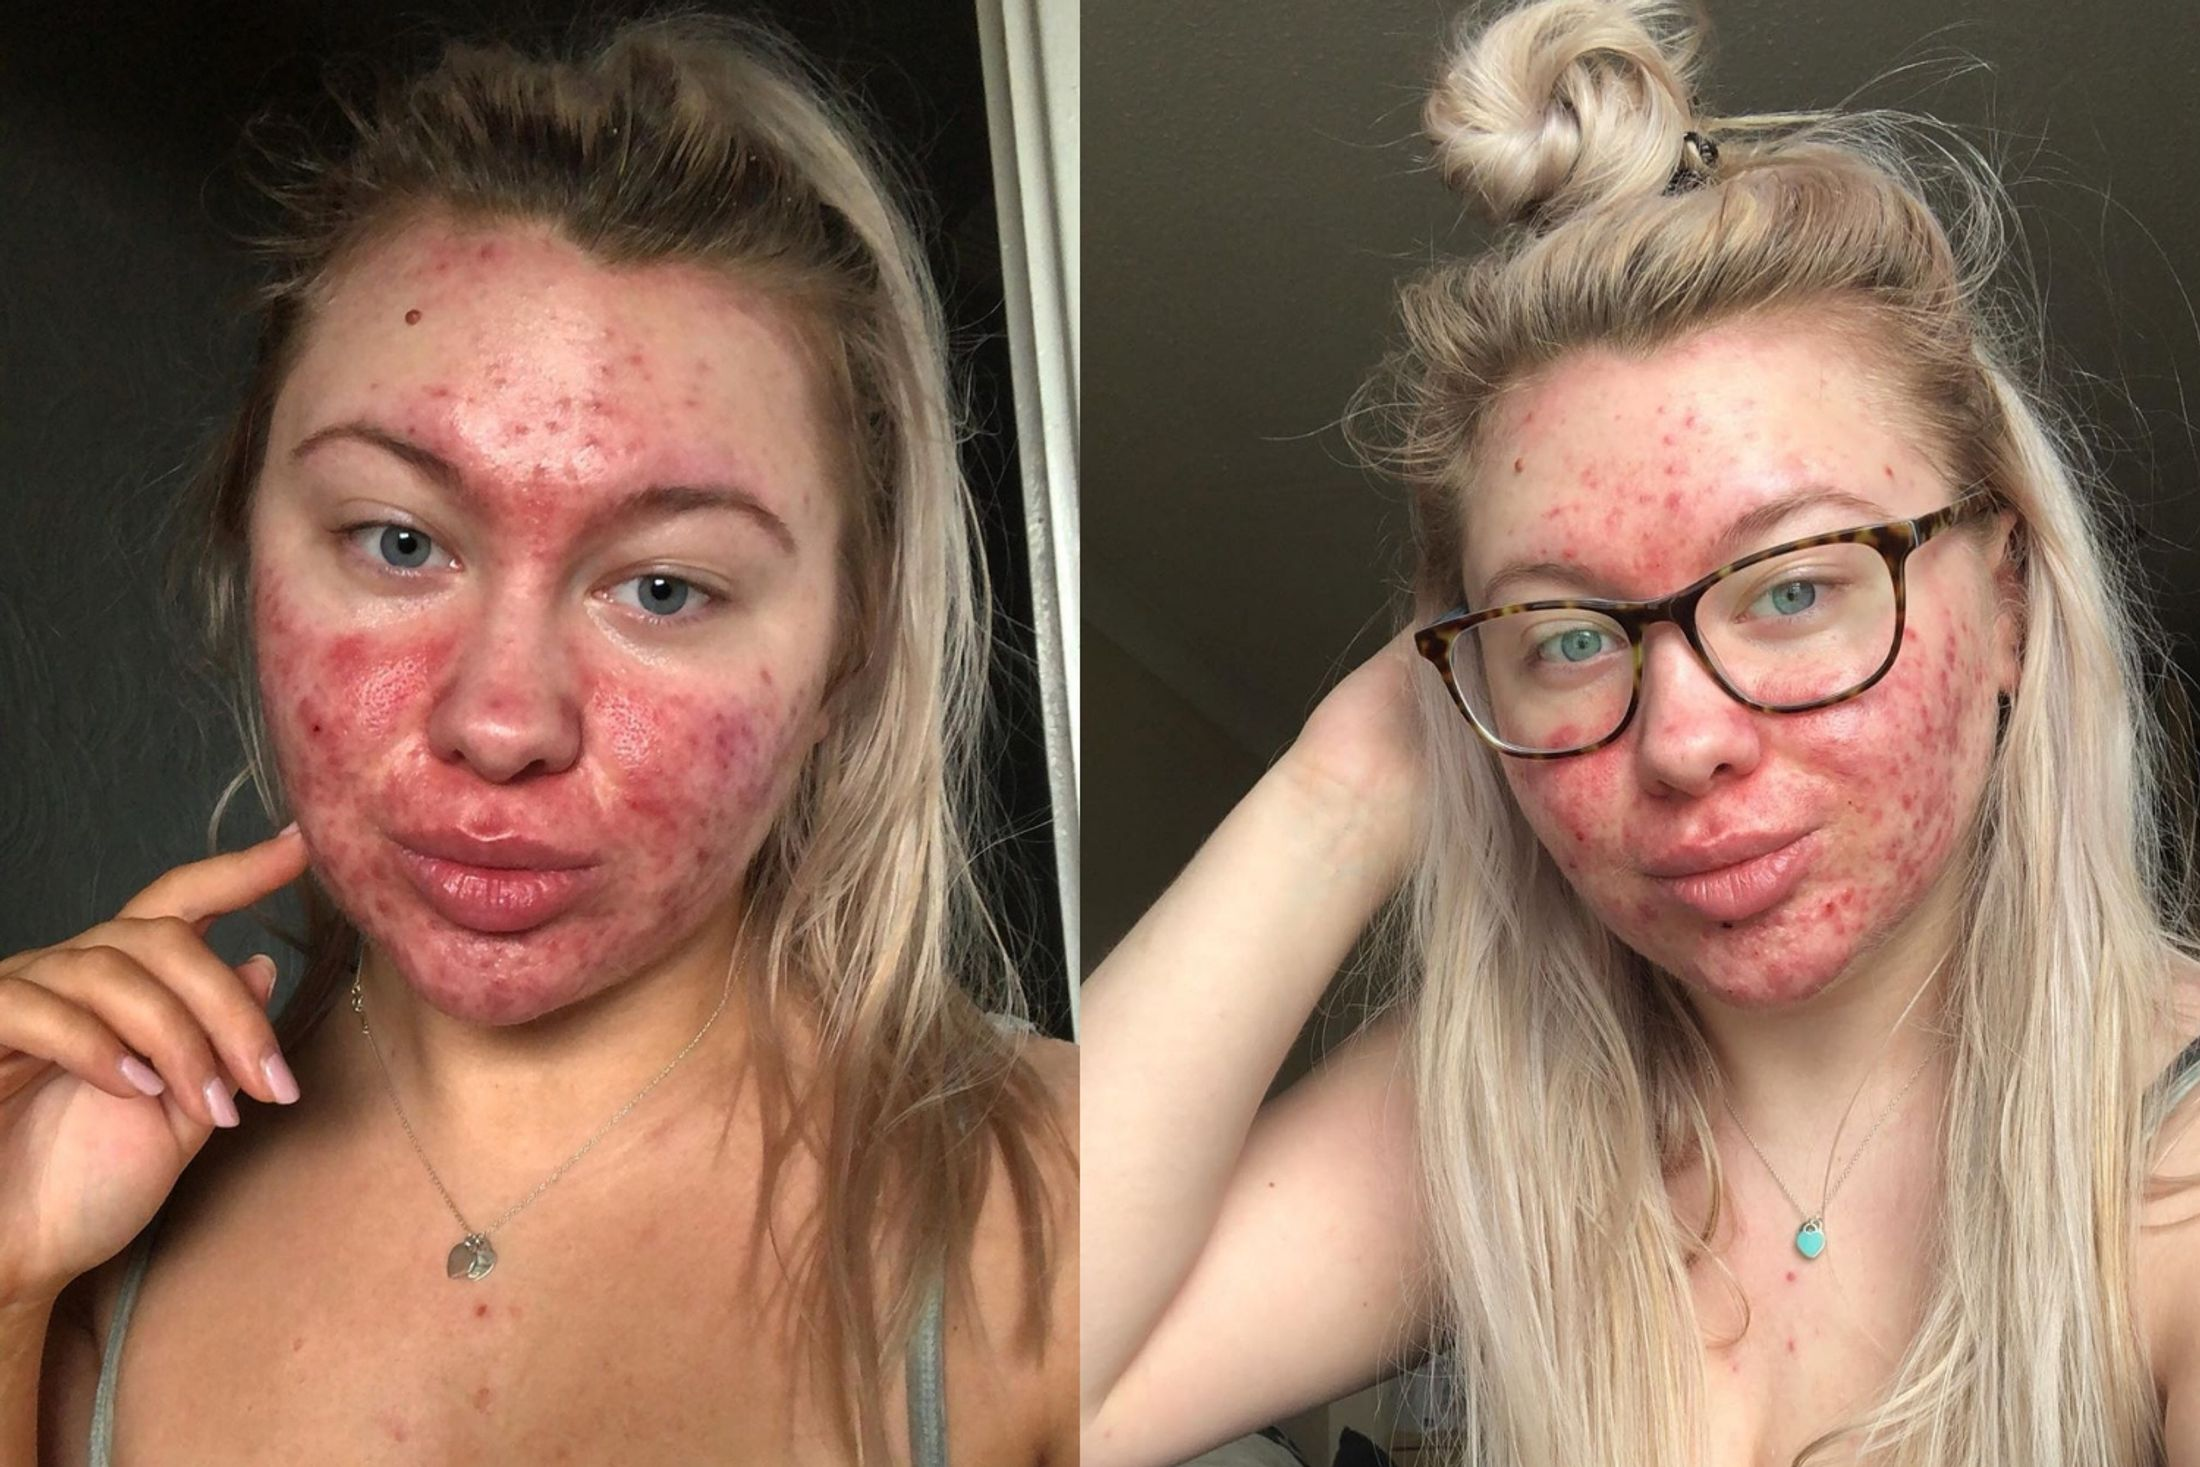 Teenager with severe cystic acne shares her skin struggles on Instagram